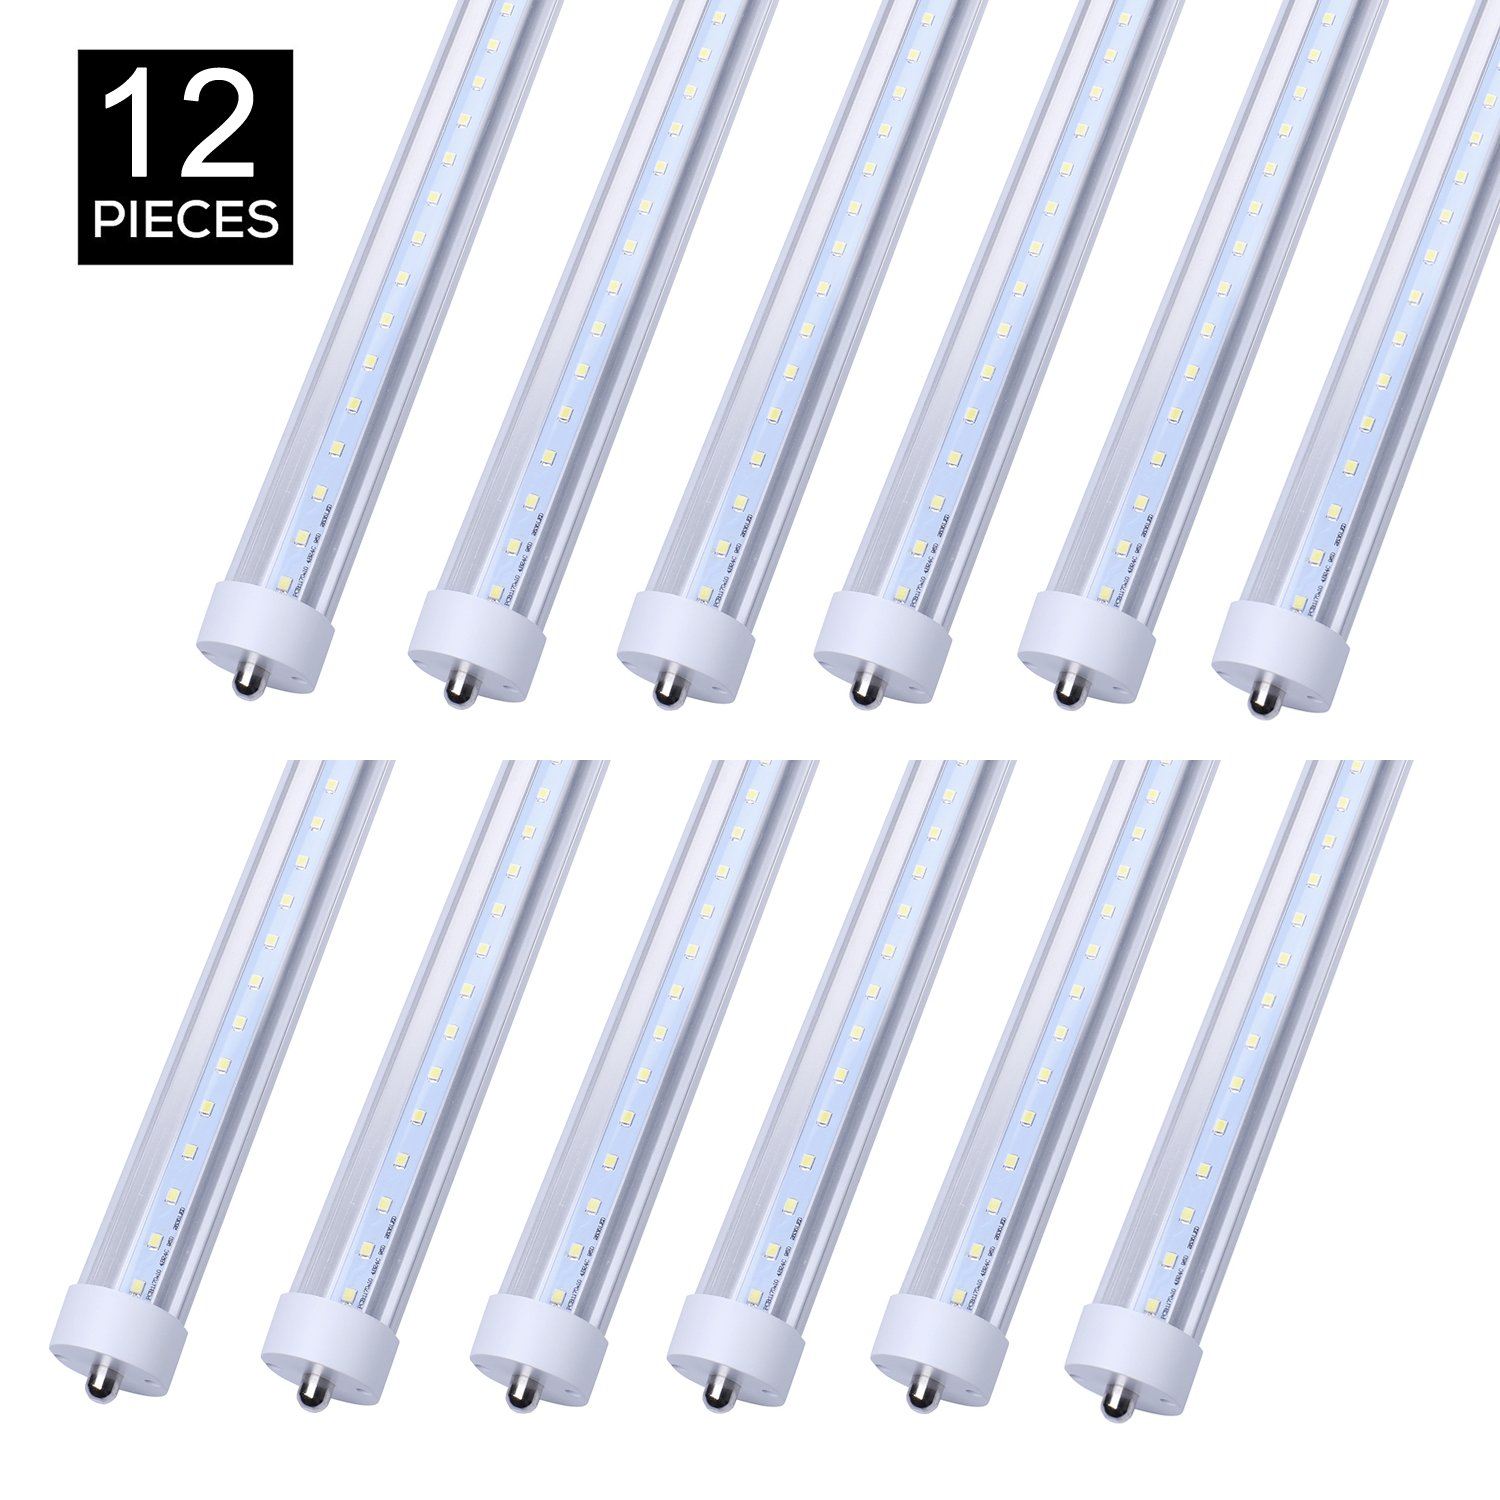 Jomitop T8 LED lamp Tube Light 8ft 45W Replacement 100 Watt Fluorescent Tube Lamp 5000K Daylight White Double-Ended Power Clear Cover Pack of 12